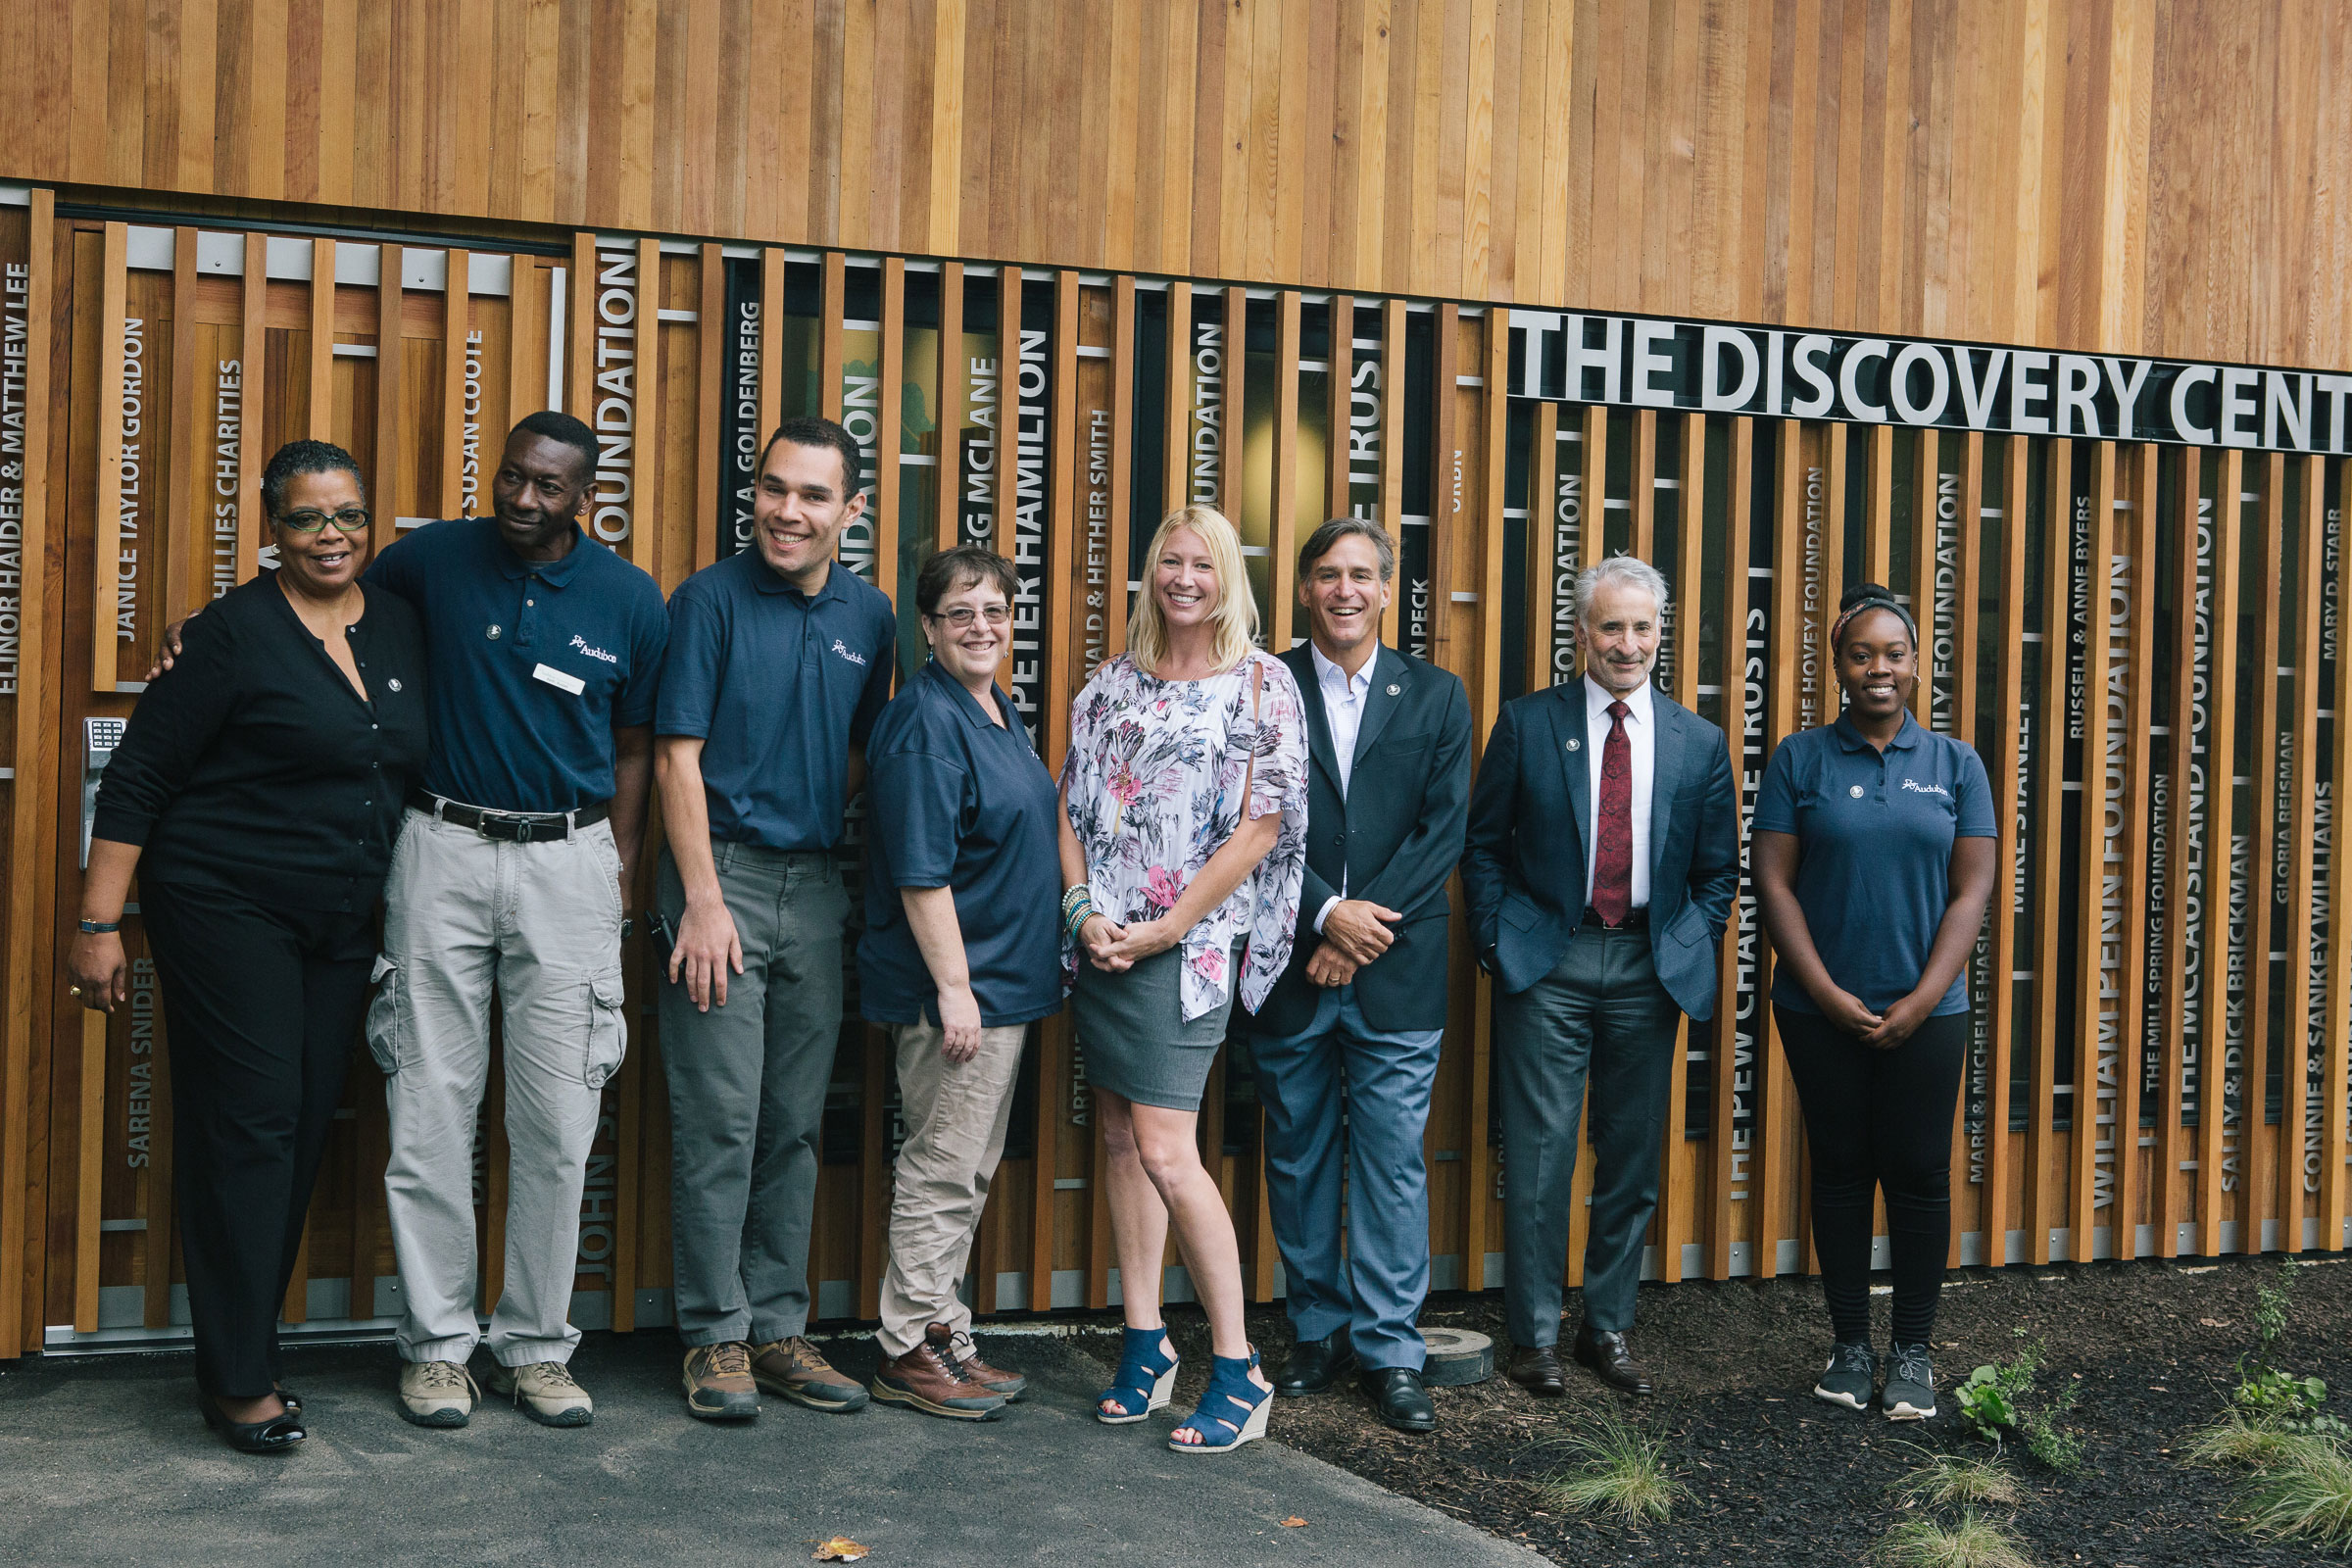 National Audubon Society and Audubon Pennsylvania teams celebrate the opening of The Discovery Center. Michelle Gustafson